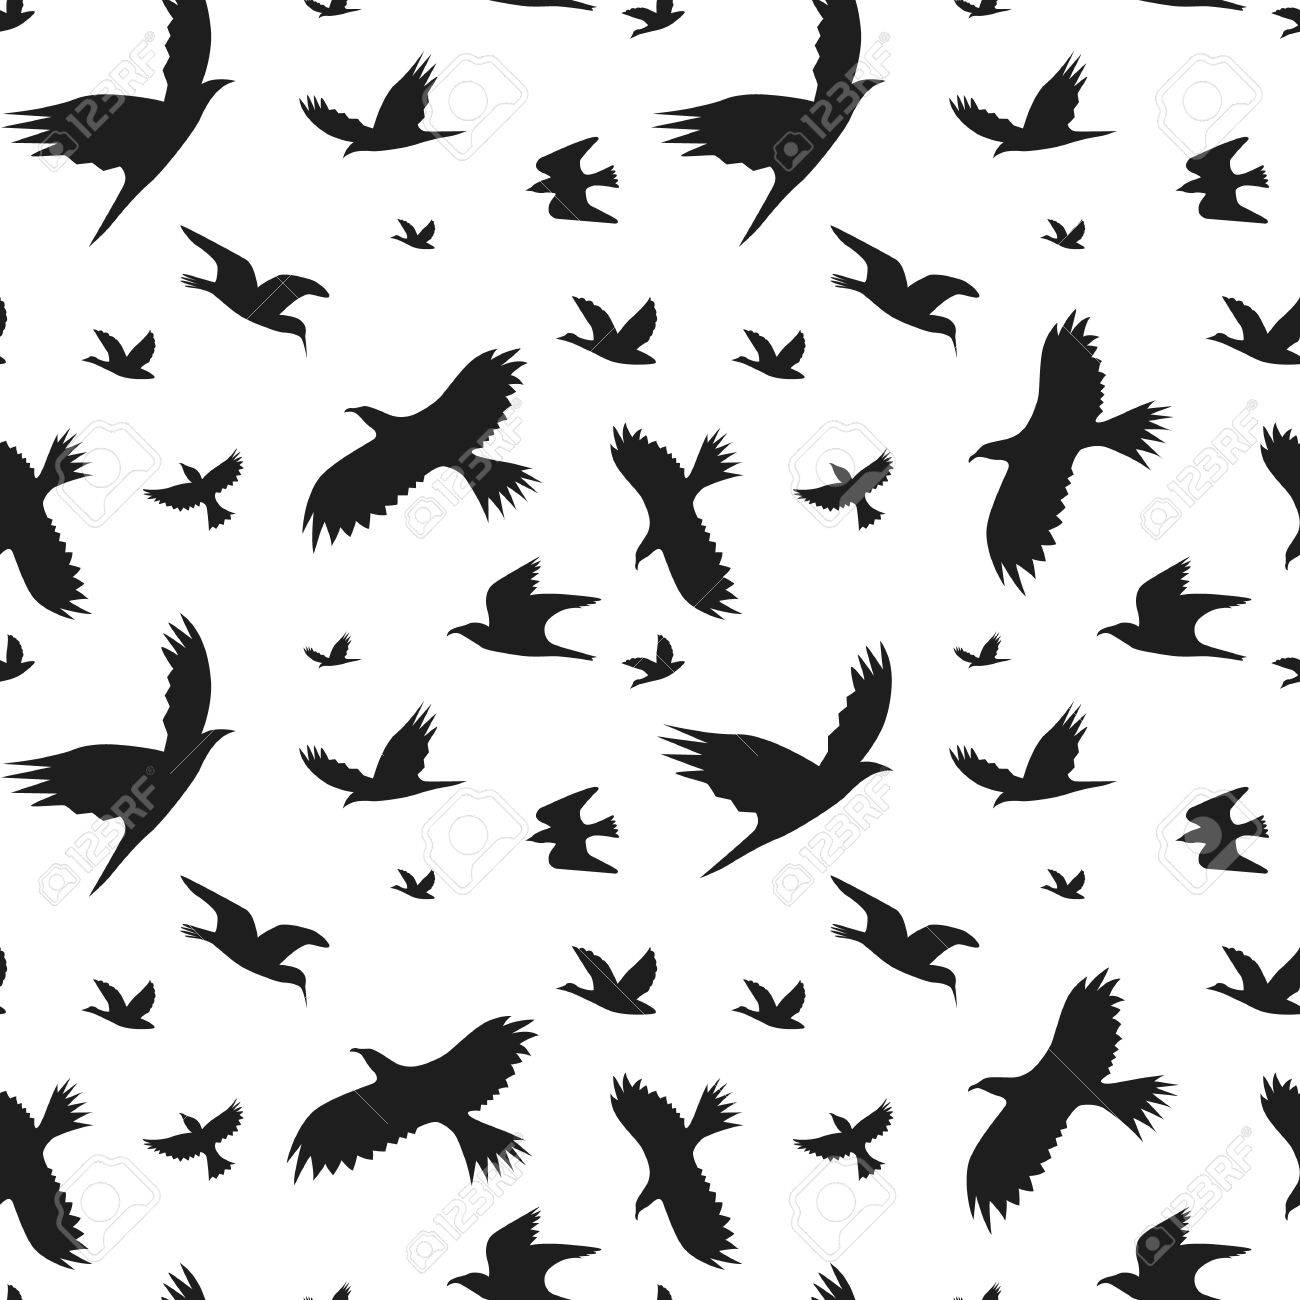 silhouette black fly birds background pattern vector royalty free